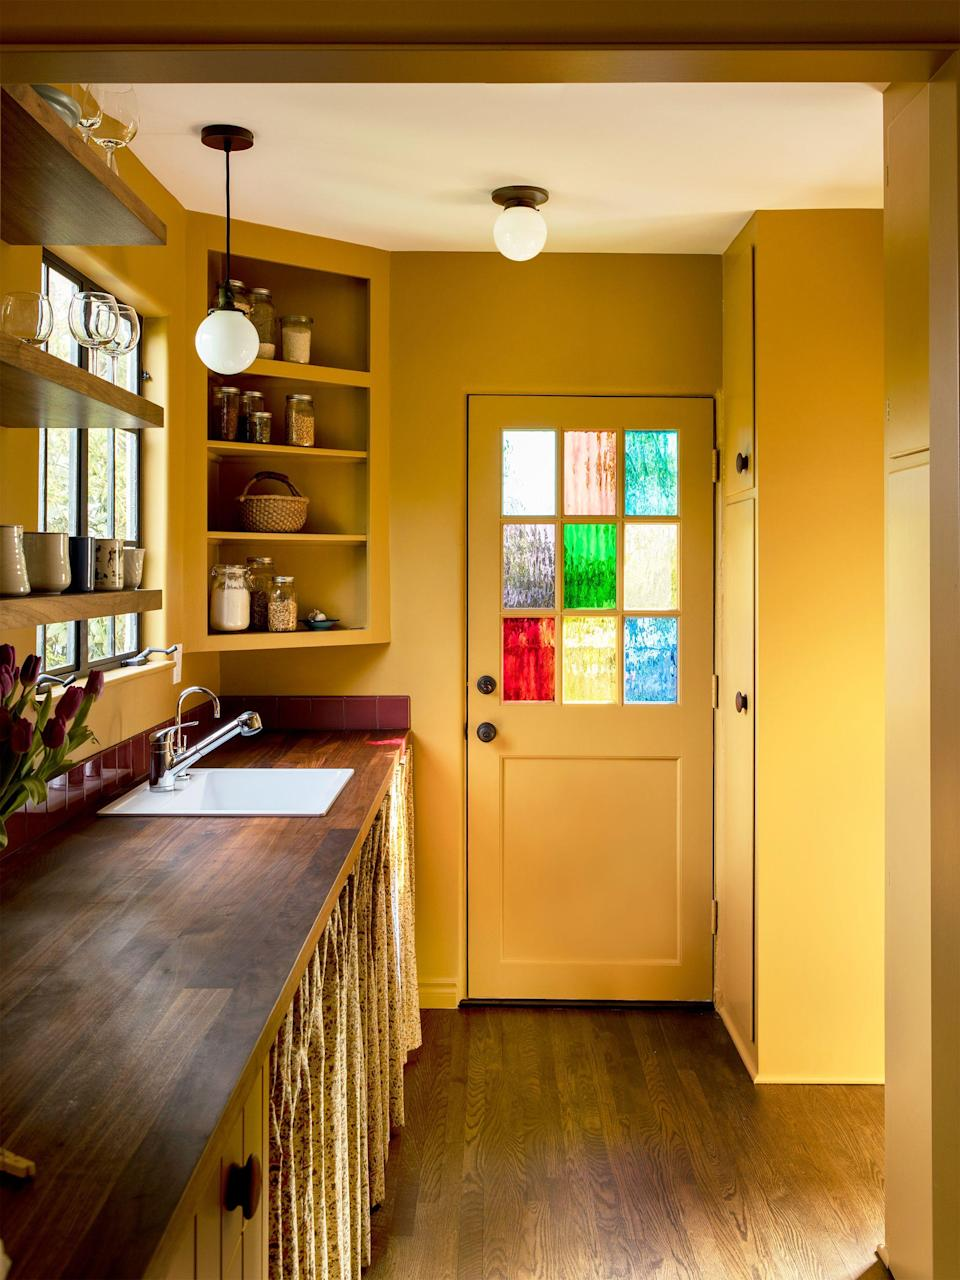 """<p>Though stained <a href=""""https://www.housebeautiful.com/home-remodeling/interior-designers/g28246438/decorative-glass-panel-ideas/"""" rel=""""nofollow noopener"""" target=""""_blank"""" data-ylk=""""slk:glass"""" class=""""link rapid-noclick-resp"""">glass</a> may at first thought conjure images of old churches and <a href=""""https://www.housebeautiful.com/lifestyle/a35471144/hotel-cecil-history-facts/"""" rel=""""nofollow noopener"""" target=""""_blank"""" data-ylk=""""slk:haunted"""" class=""""link rapid-noclick-resp"""">haunted</a> houses, we assure you those aren't the only contexts for this colorful art. In fact, stained glass <a href=""""https://www.housebeautiful.com/home-remodeling/interior-designers/a29268889/types-of-window-treatments/"""" rel=""""nofollow noopener"""" target=""""_blank"""" data-ylk=""""slk:windows"""" class=""""link rapid-noclick-resp"""">windows</a> are making a comeback (though, if you ask us, they never really went out of style), with designers incorporating them in creative, modern ways. From super old-school stained glass windows that are brought back to life with contemporary decor to Midcentury interpretations and contemporary takes (like colorful plexiglass!), allow the 10 stained glass ideas and examples ahead to inspire you to reimagine how you let the light in. </p>"""